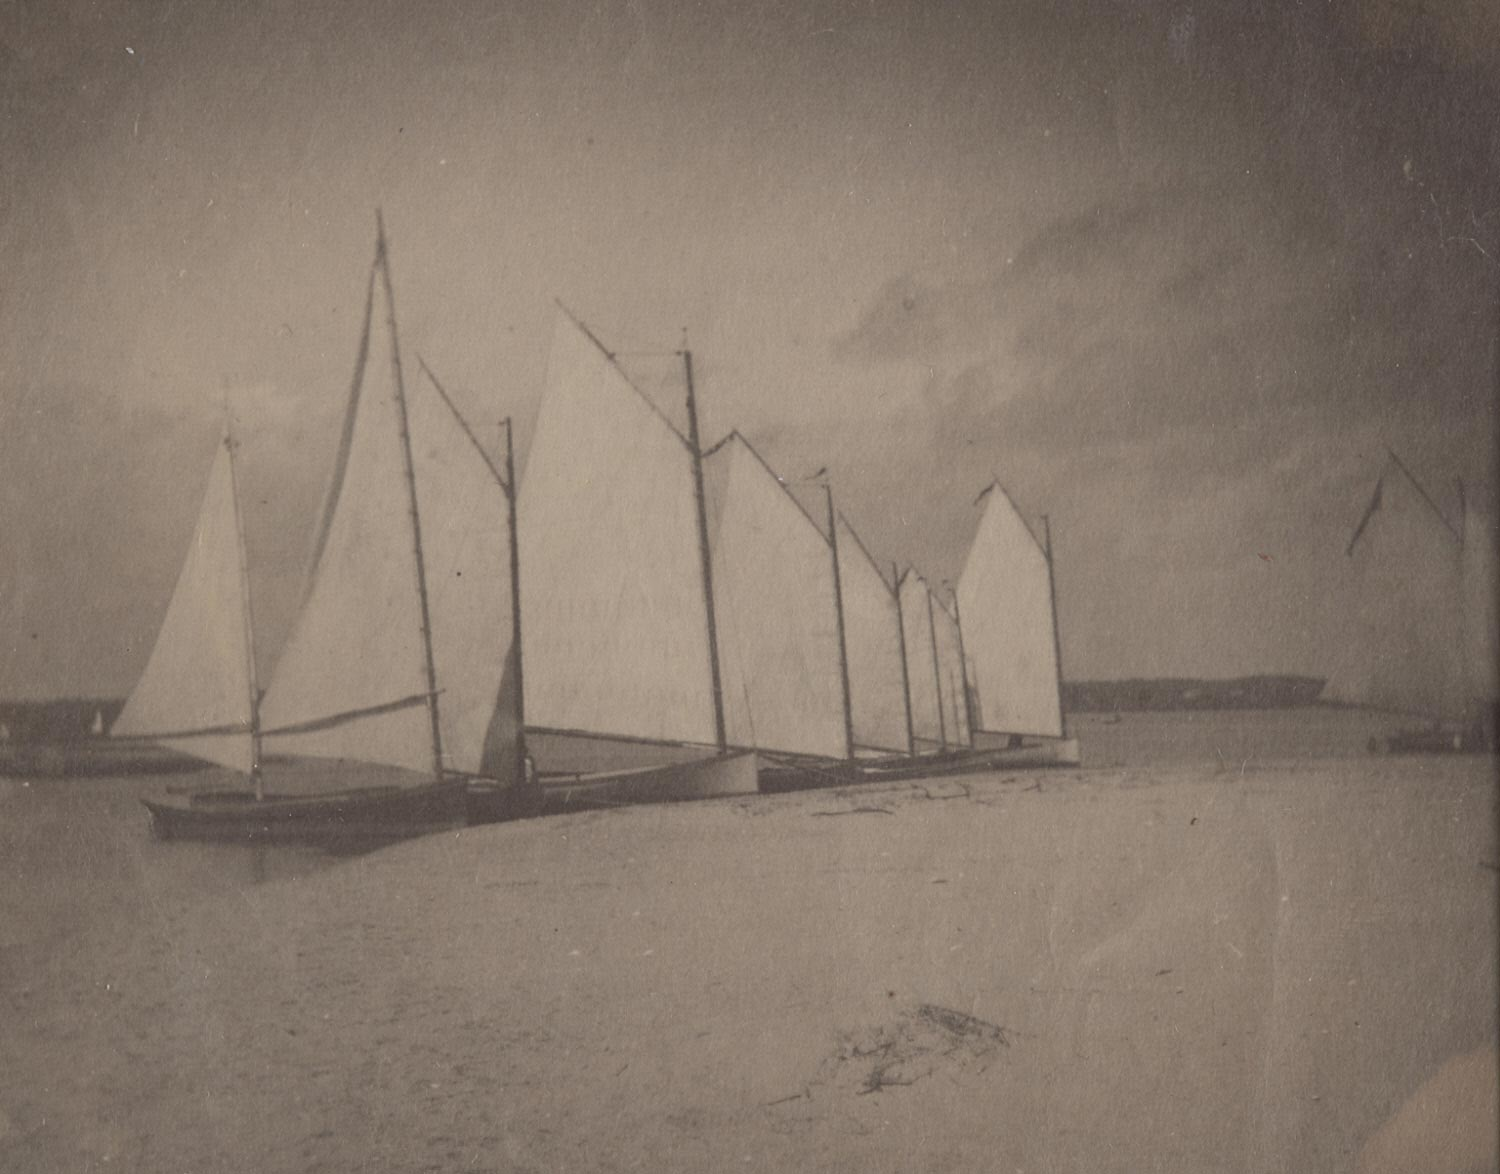 Sailboats on the New Jersey Shore